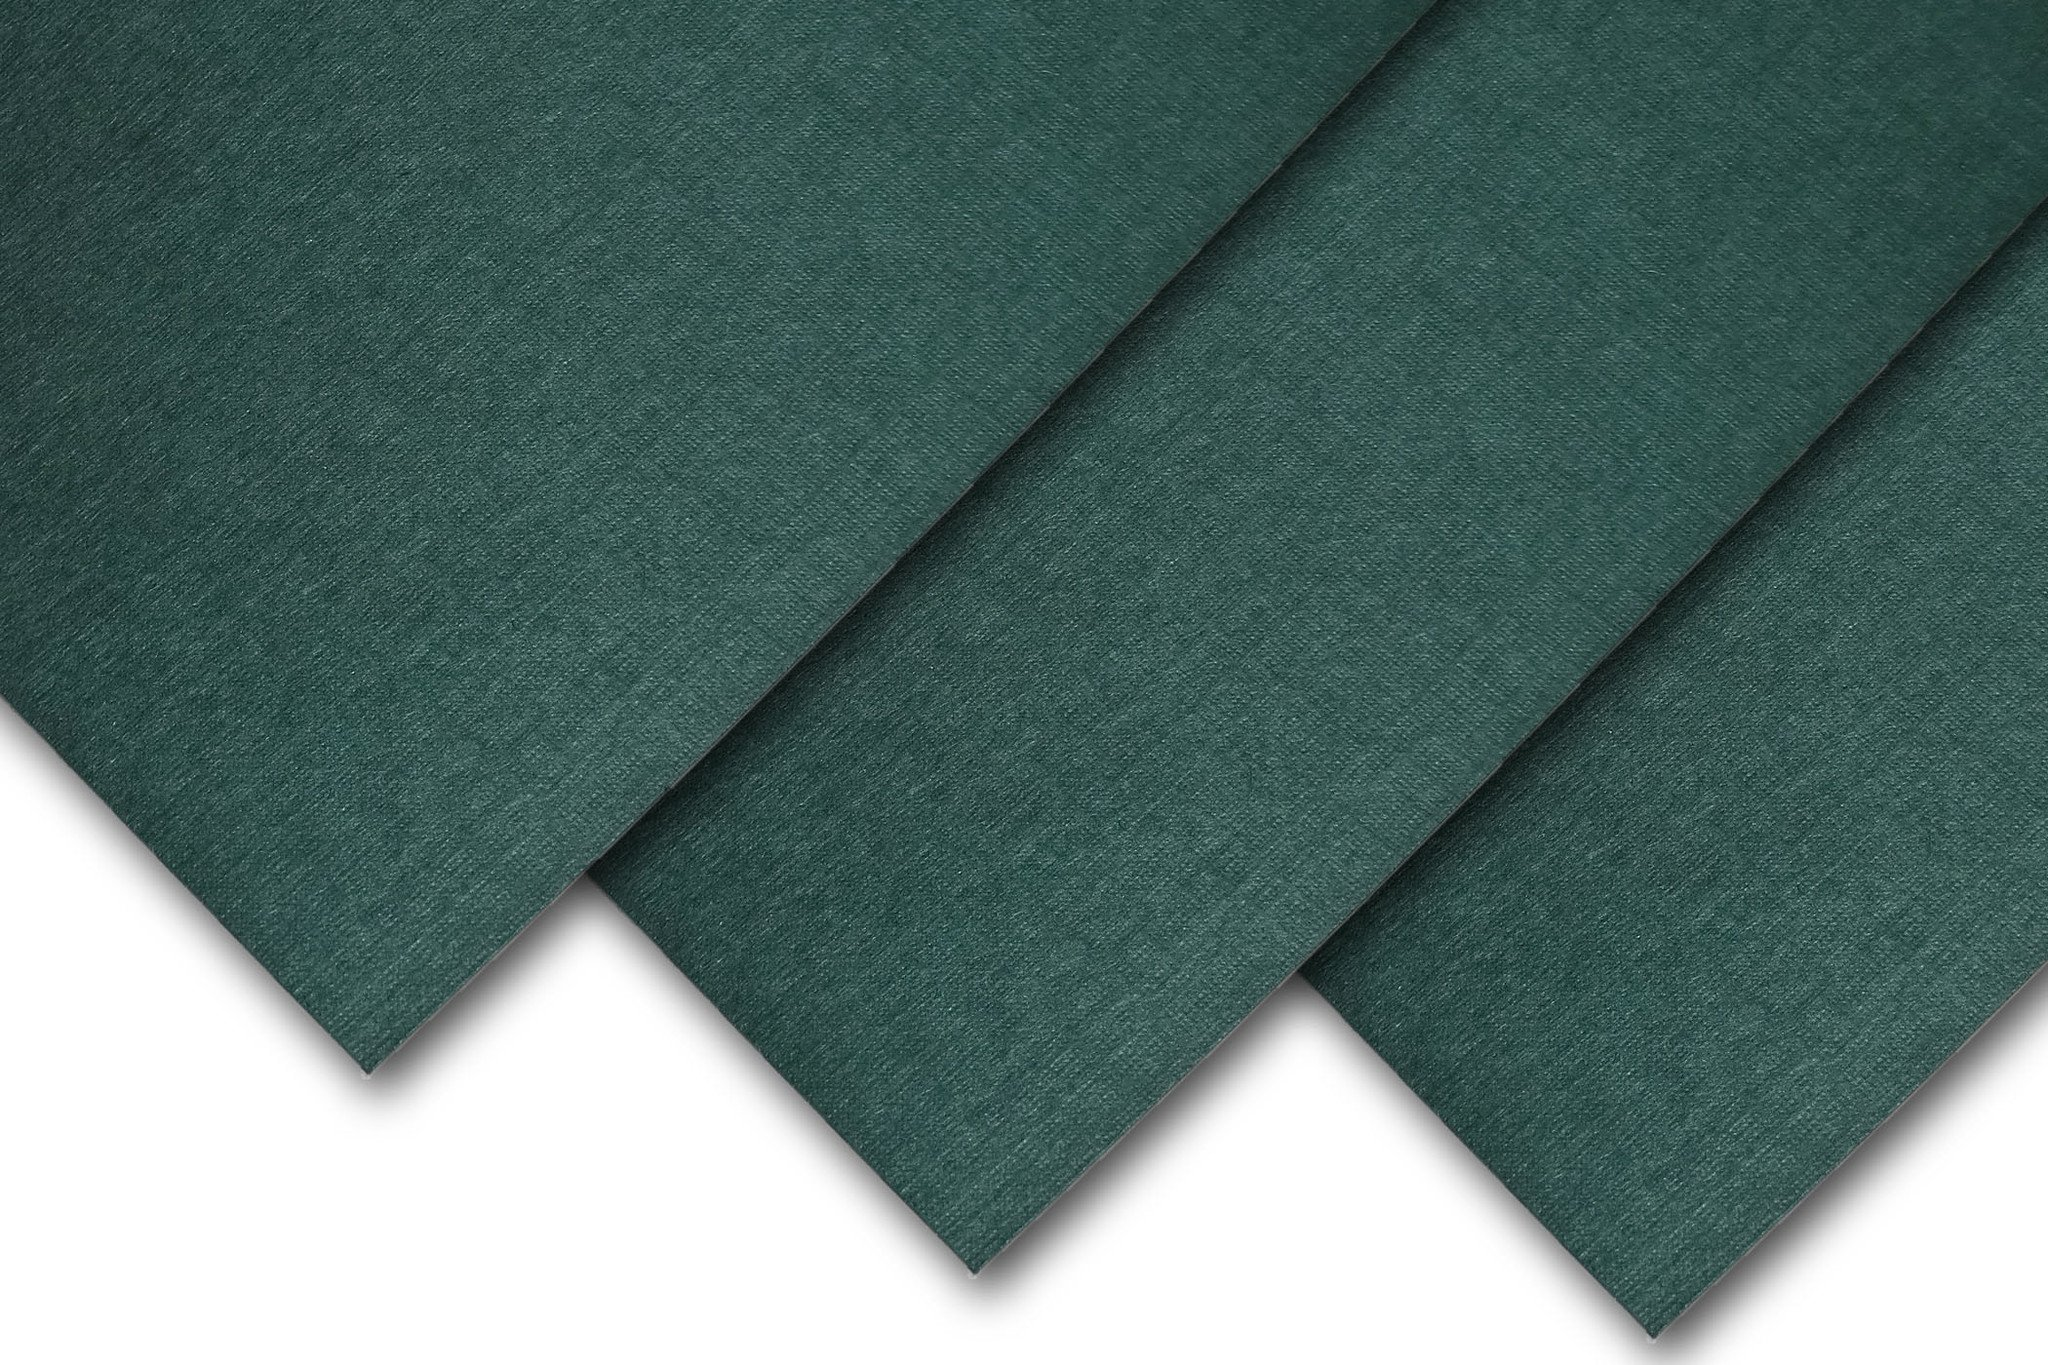 Royal Linen Textured 5'' x 7'' inch 80# Cover Card Stock - 216gsm 30% Recycled Content (Emerald, 200 Pack) by CutCardStock